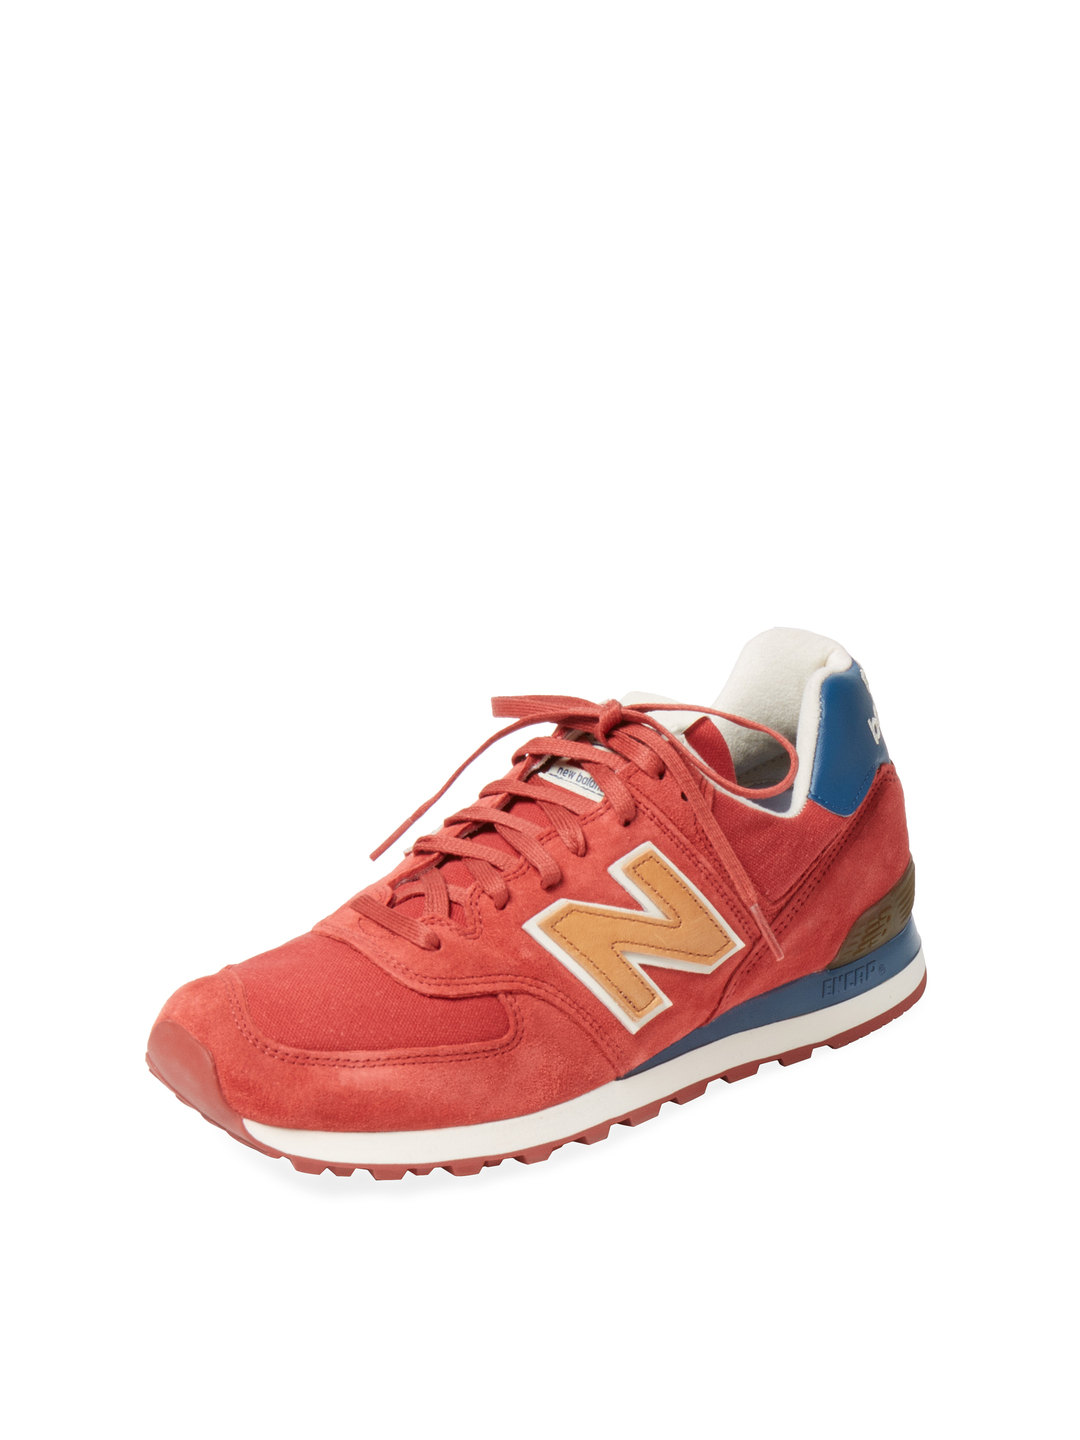 Distinct Weekend 574 Sneaker new balance